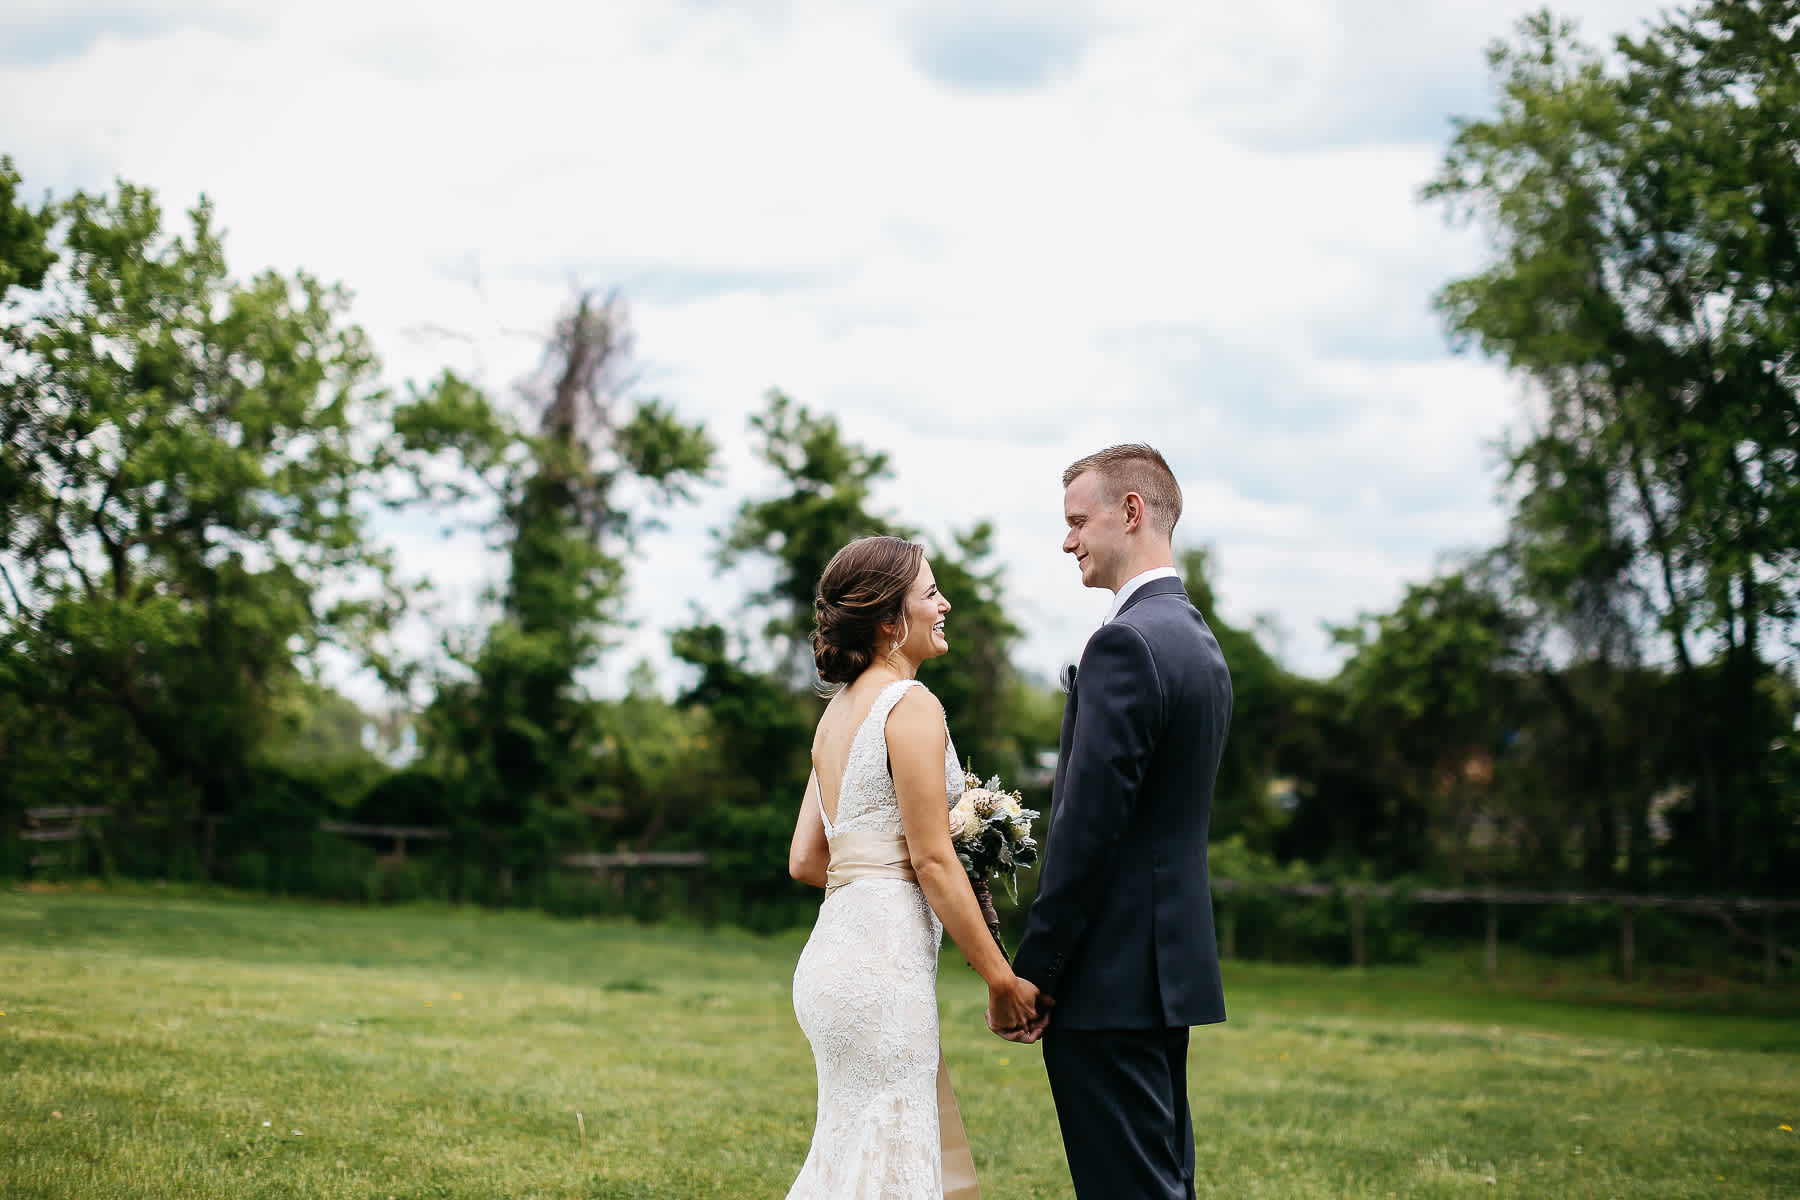 Pennsylvania-Newton-Rosebank-winery-spring-lifestyle-wedding-41